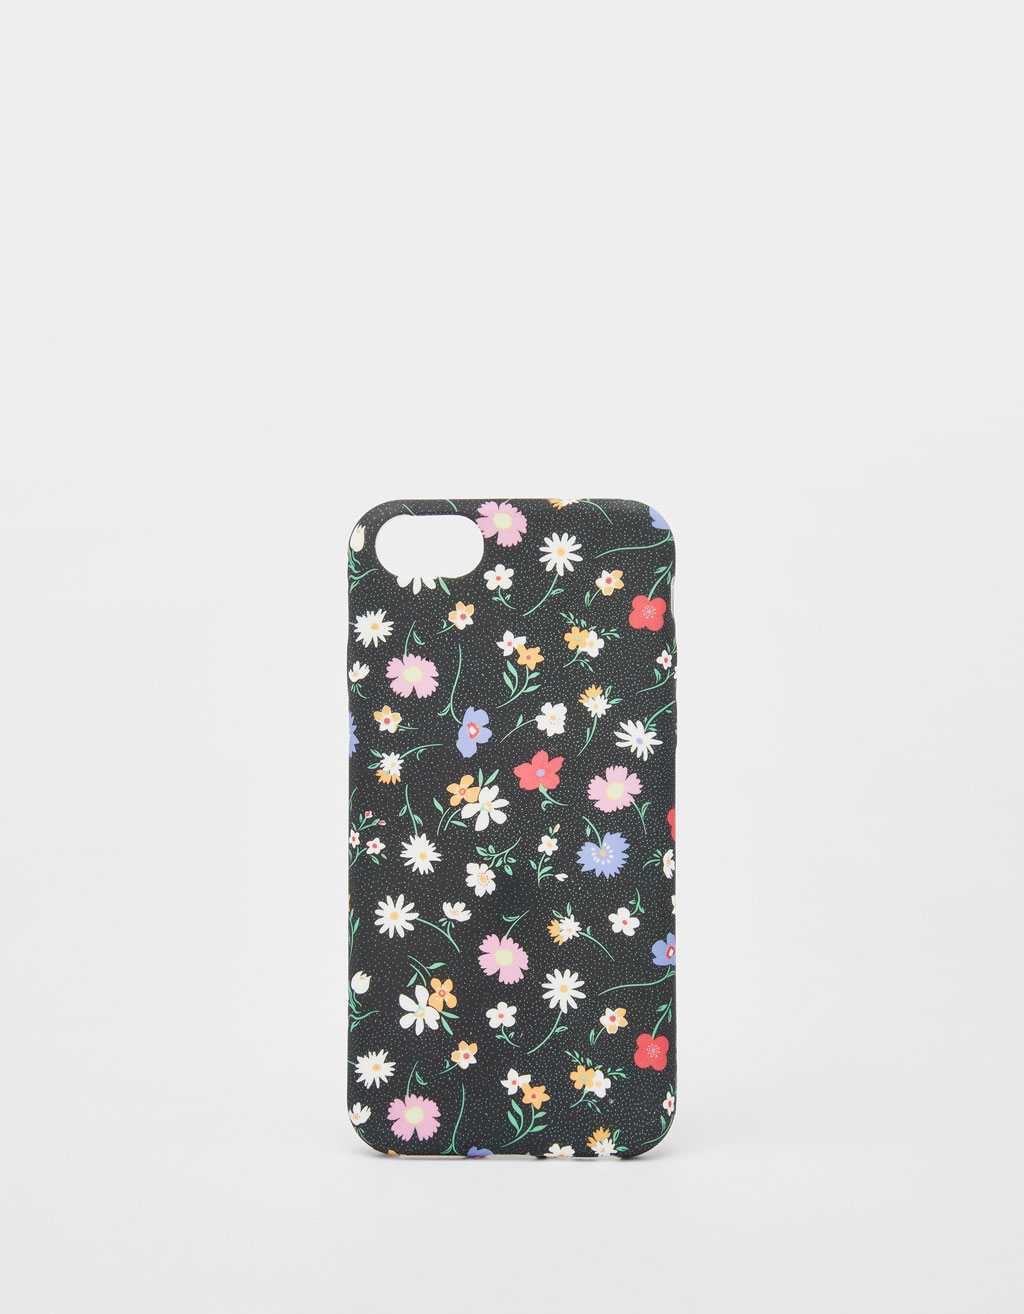 Floral iPhone 6 / 6S / 7 / 8 case